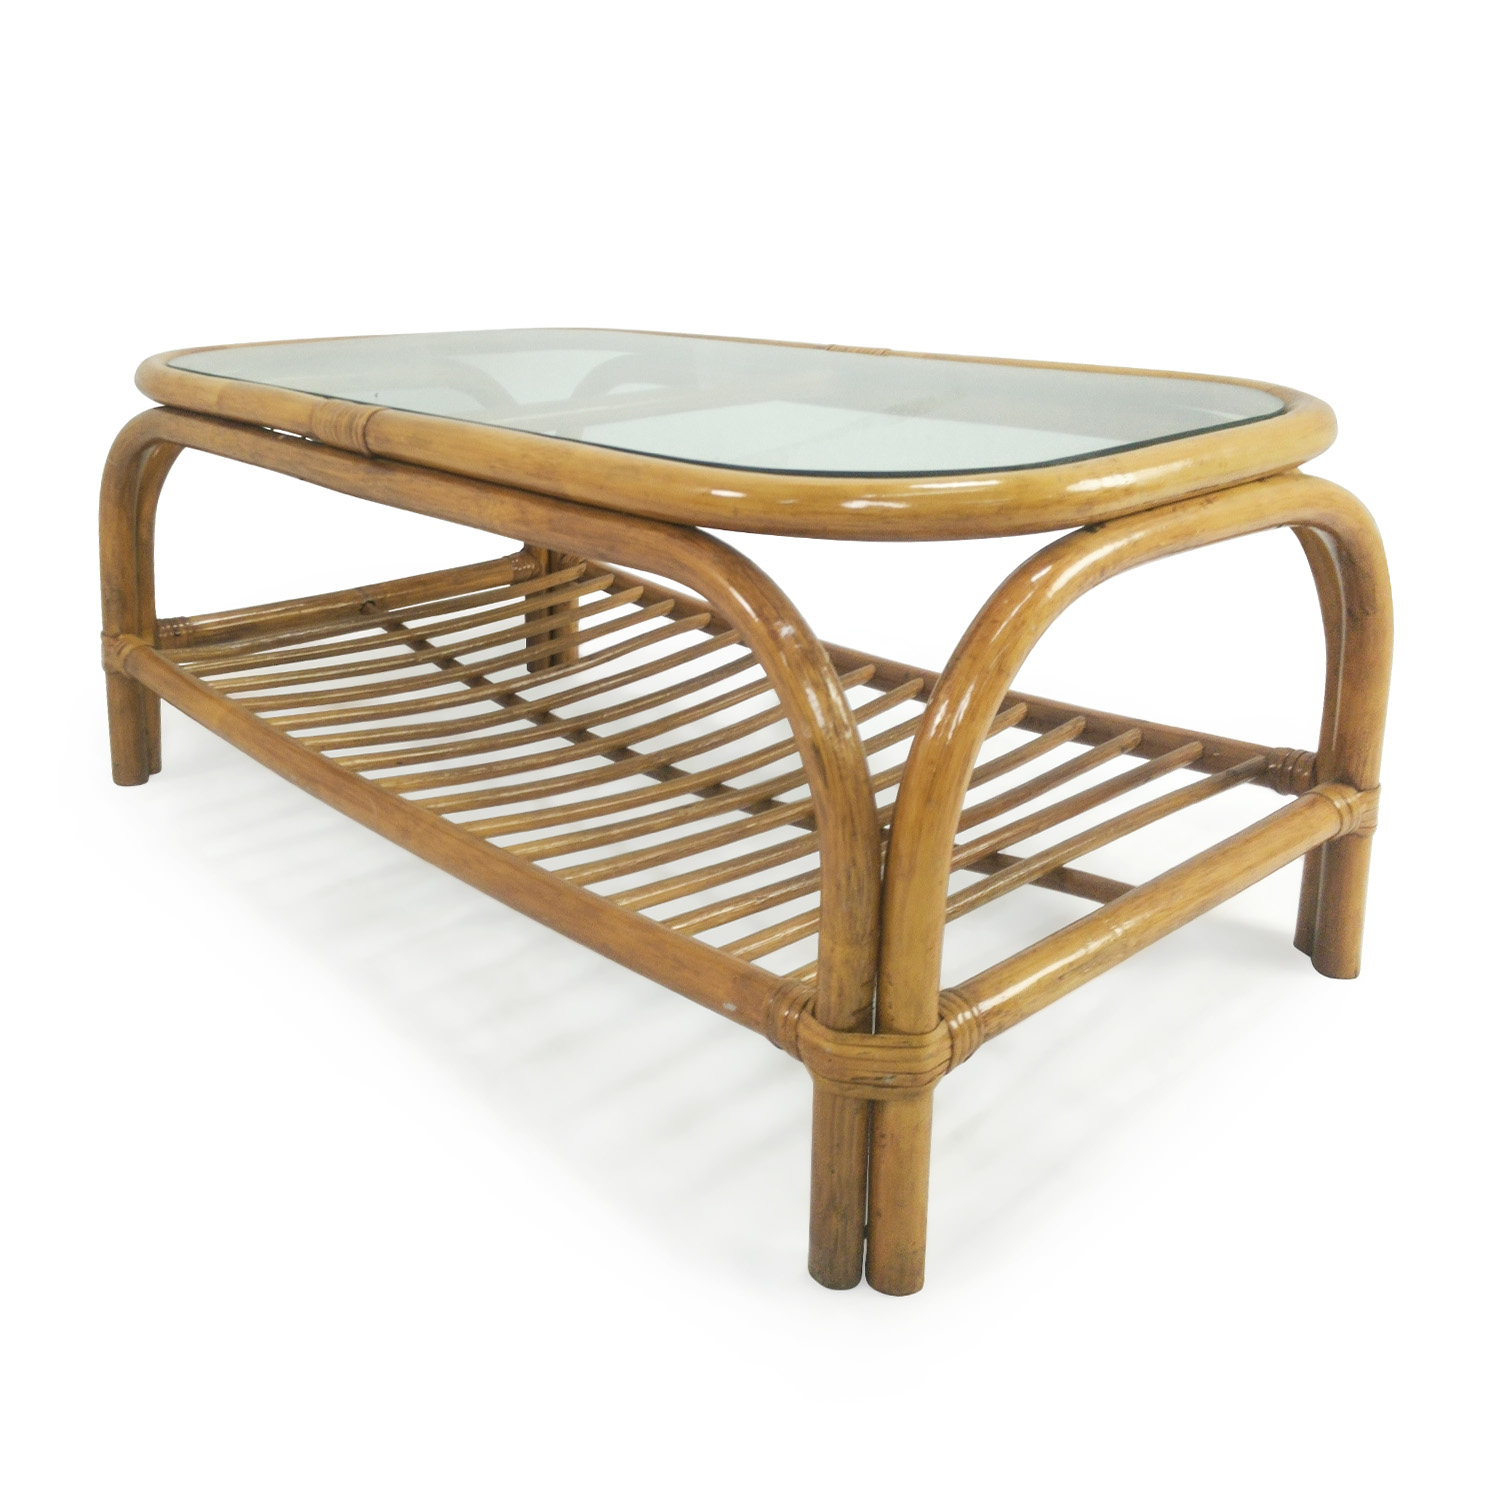 80 off glass top bamboo coffee table tables for Coffee tables glass top